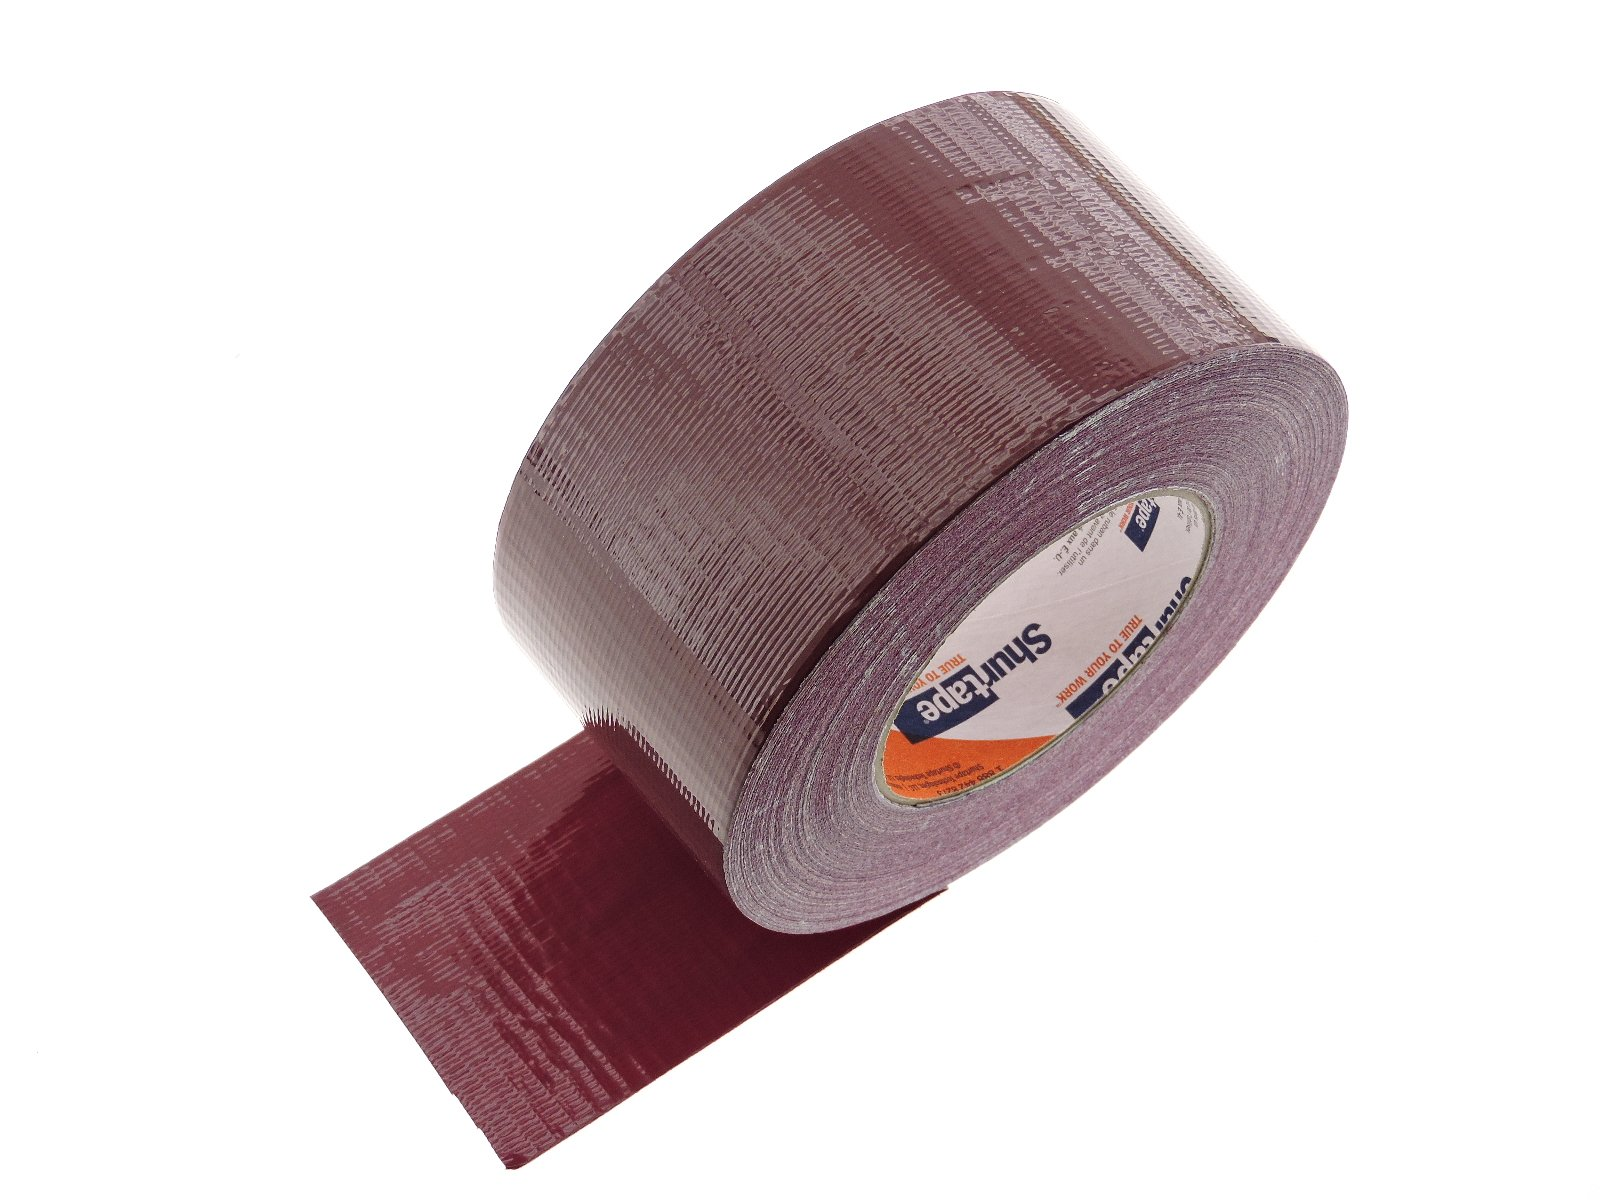 Shurtape 3'' in Burgundy Maroon Duct Tape PC-600 Heavy 9 mil Cloth Reinforced PE Back Duct Tape Water UV Resistant Hand Tearable 60yd USA Made 50 oz inch adhesion 16% elongation 22 lb in tensile